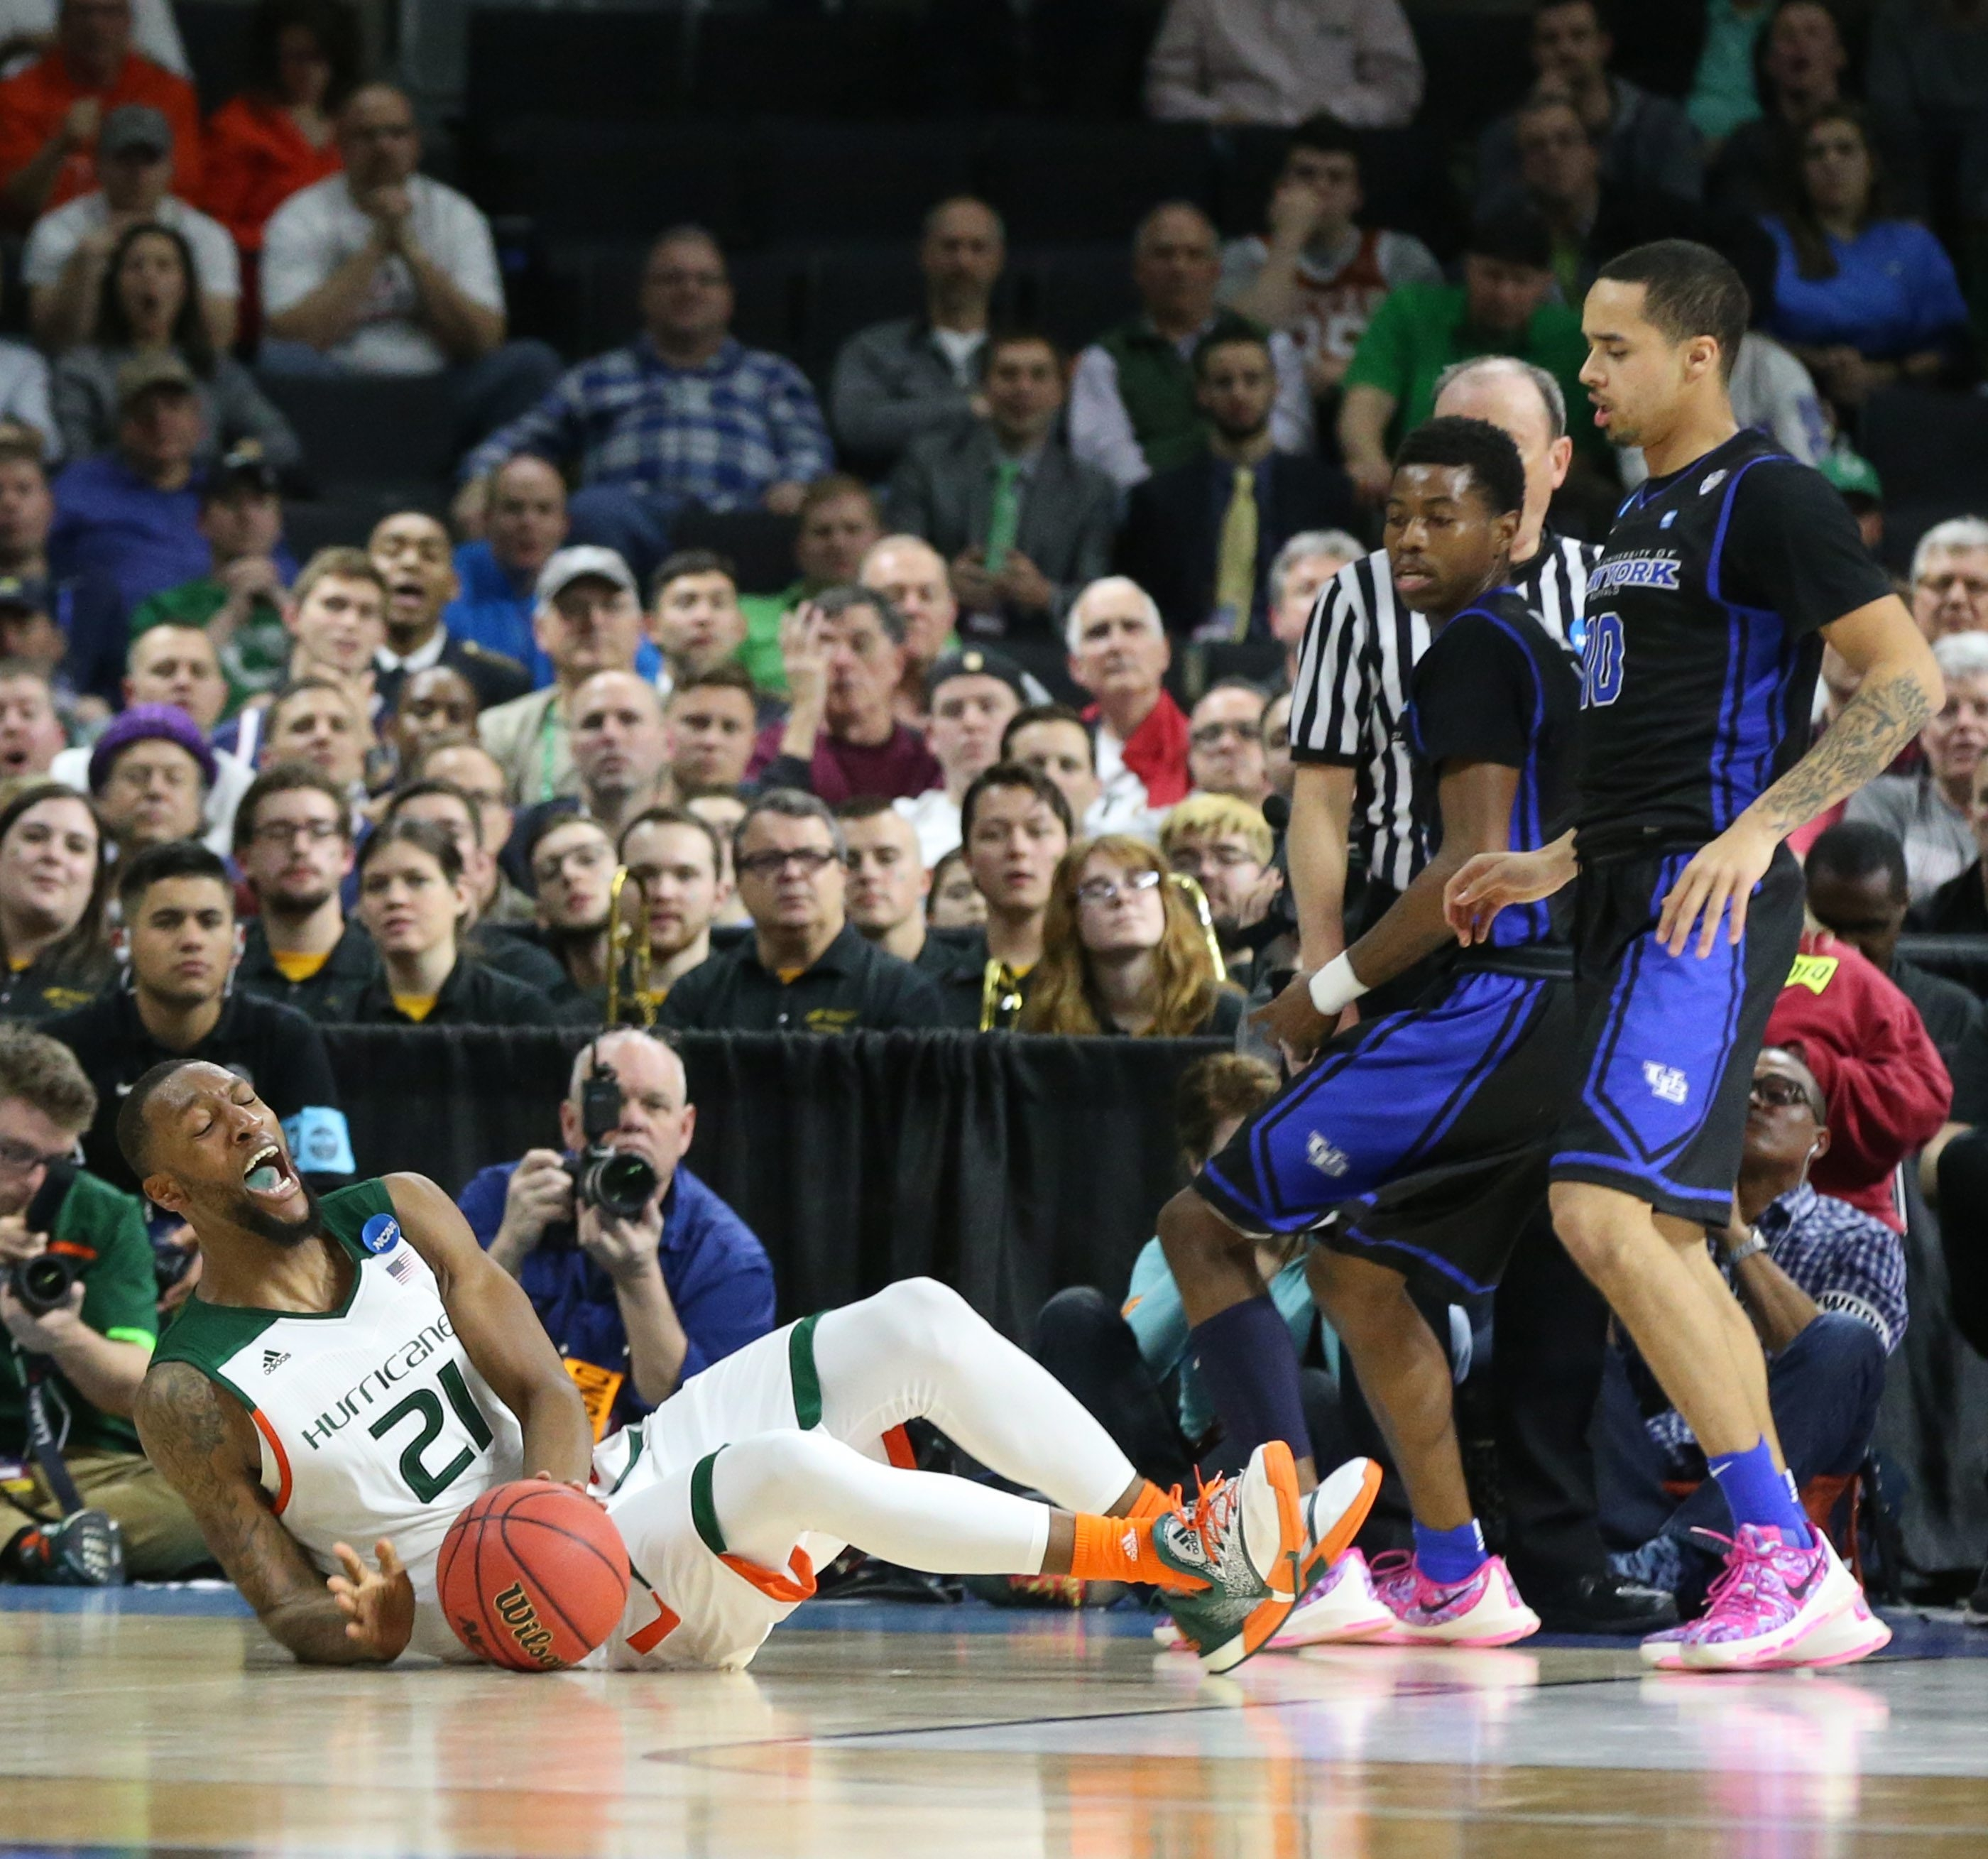 Buffalo Bulls guard Jarryn Skeete (10) fouls scores Miami (Fl) Hurricanes forward Kamari Murphy (21) in the second half in first round of NCAA Tournament at Dunkin' Donuts Center in Providence,RI on Thursday, March 17, 2016.  (James P. McCoy/ Buffalo News)